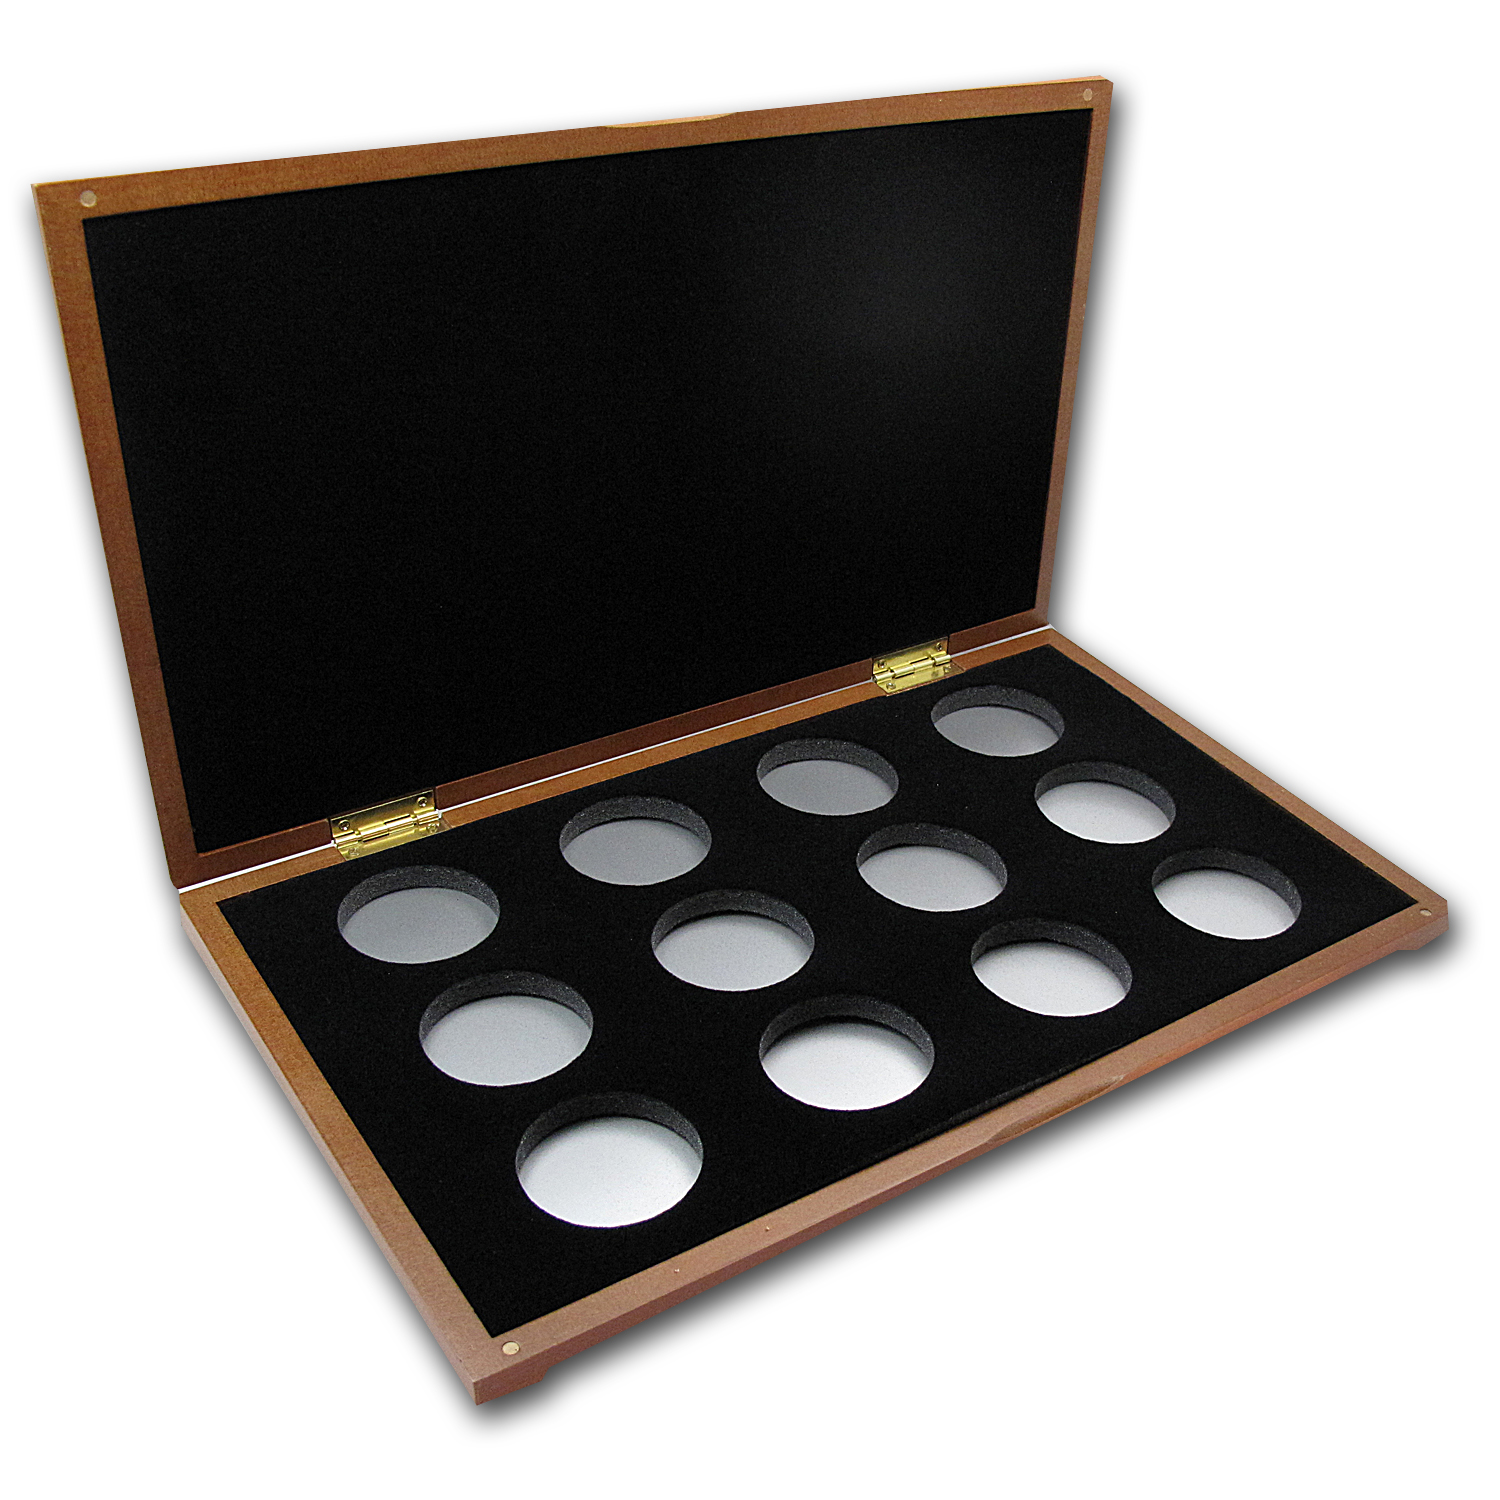 Lunar Series II (1 oz Silver) 12-Coin Wood Presentation Box